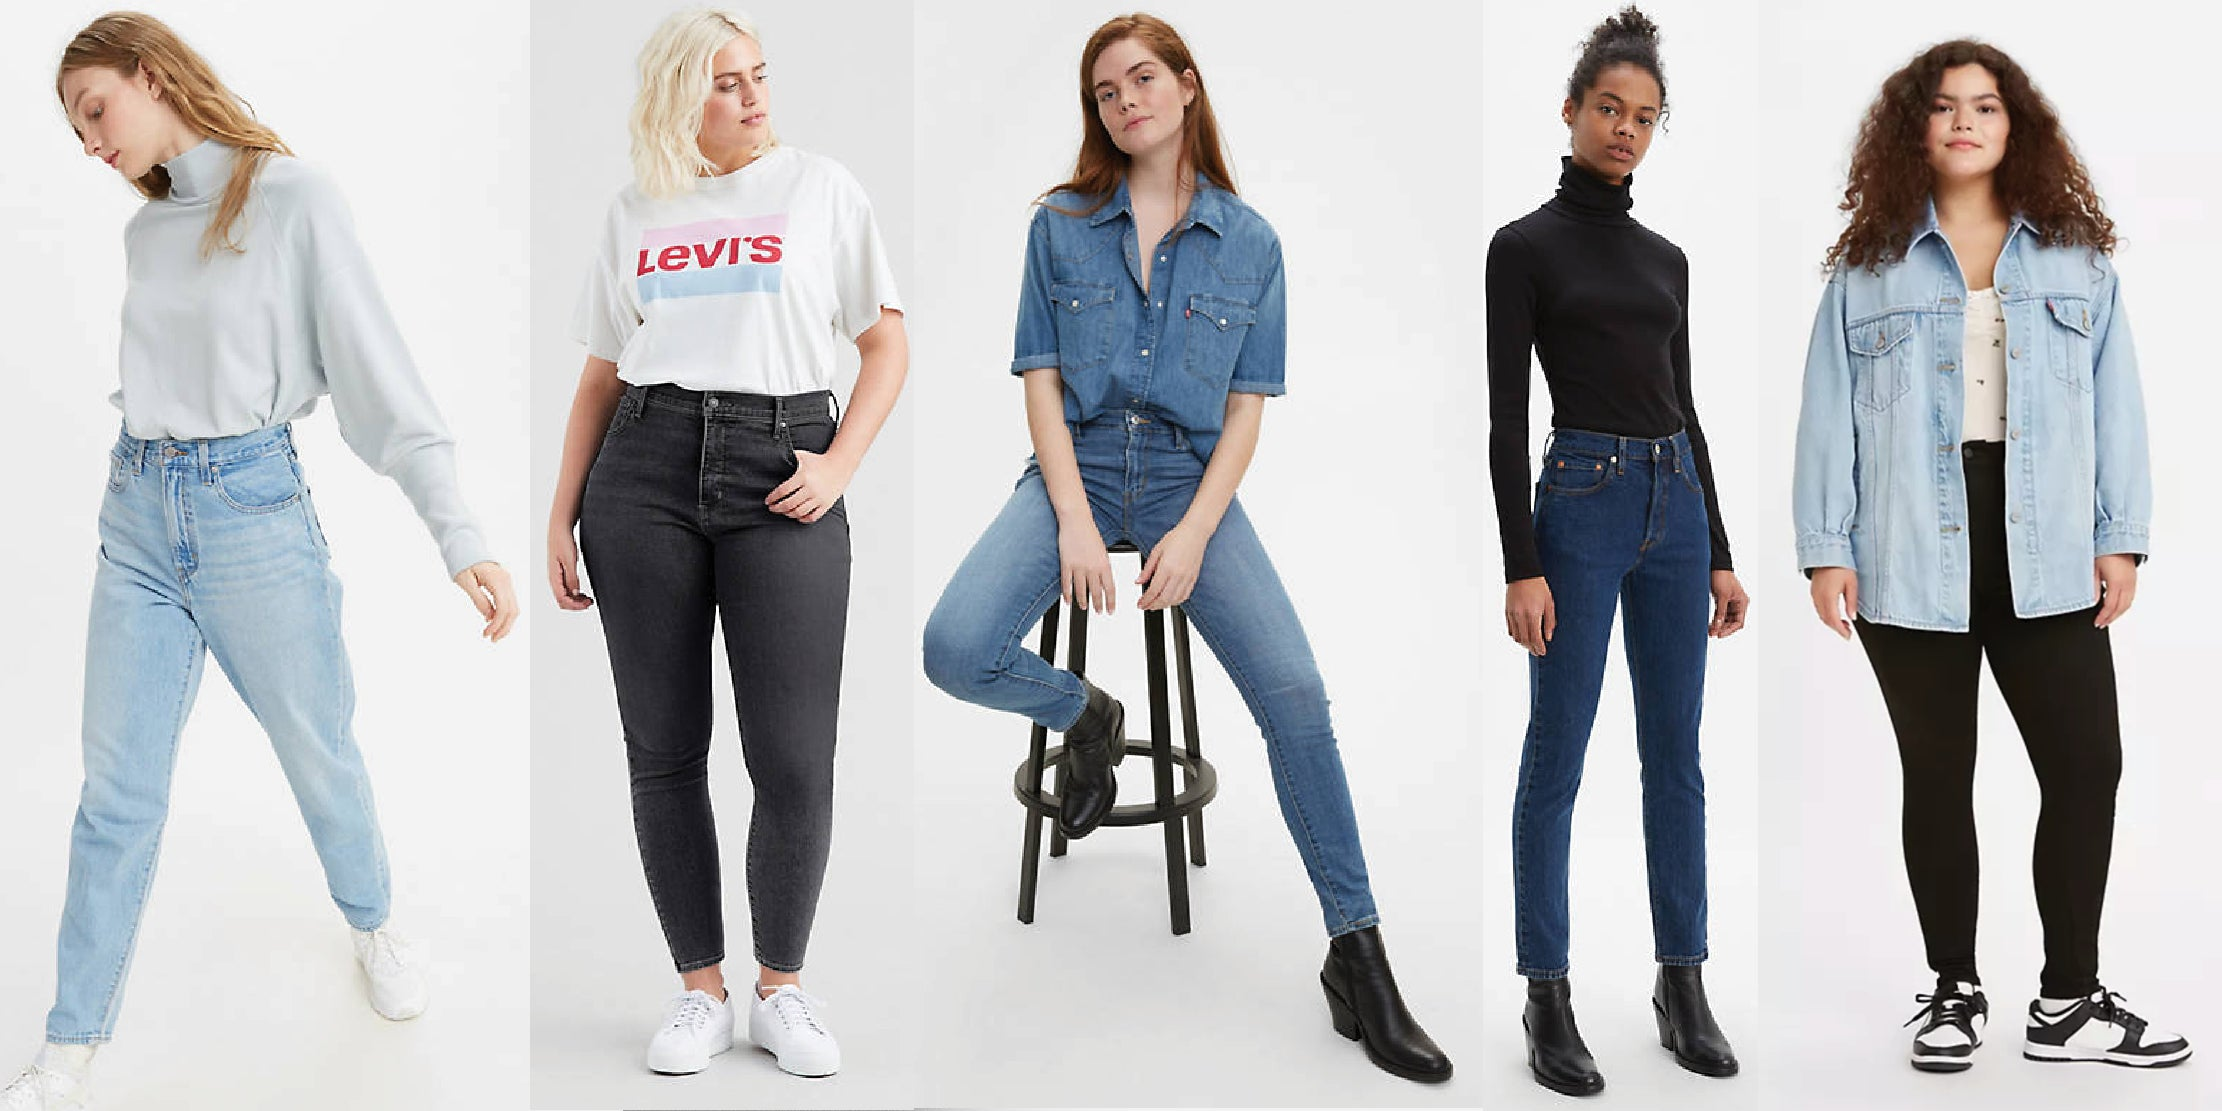 Levi's sizes to fit all body shapes